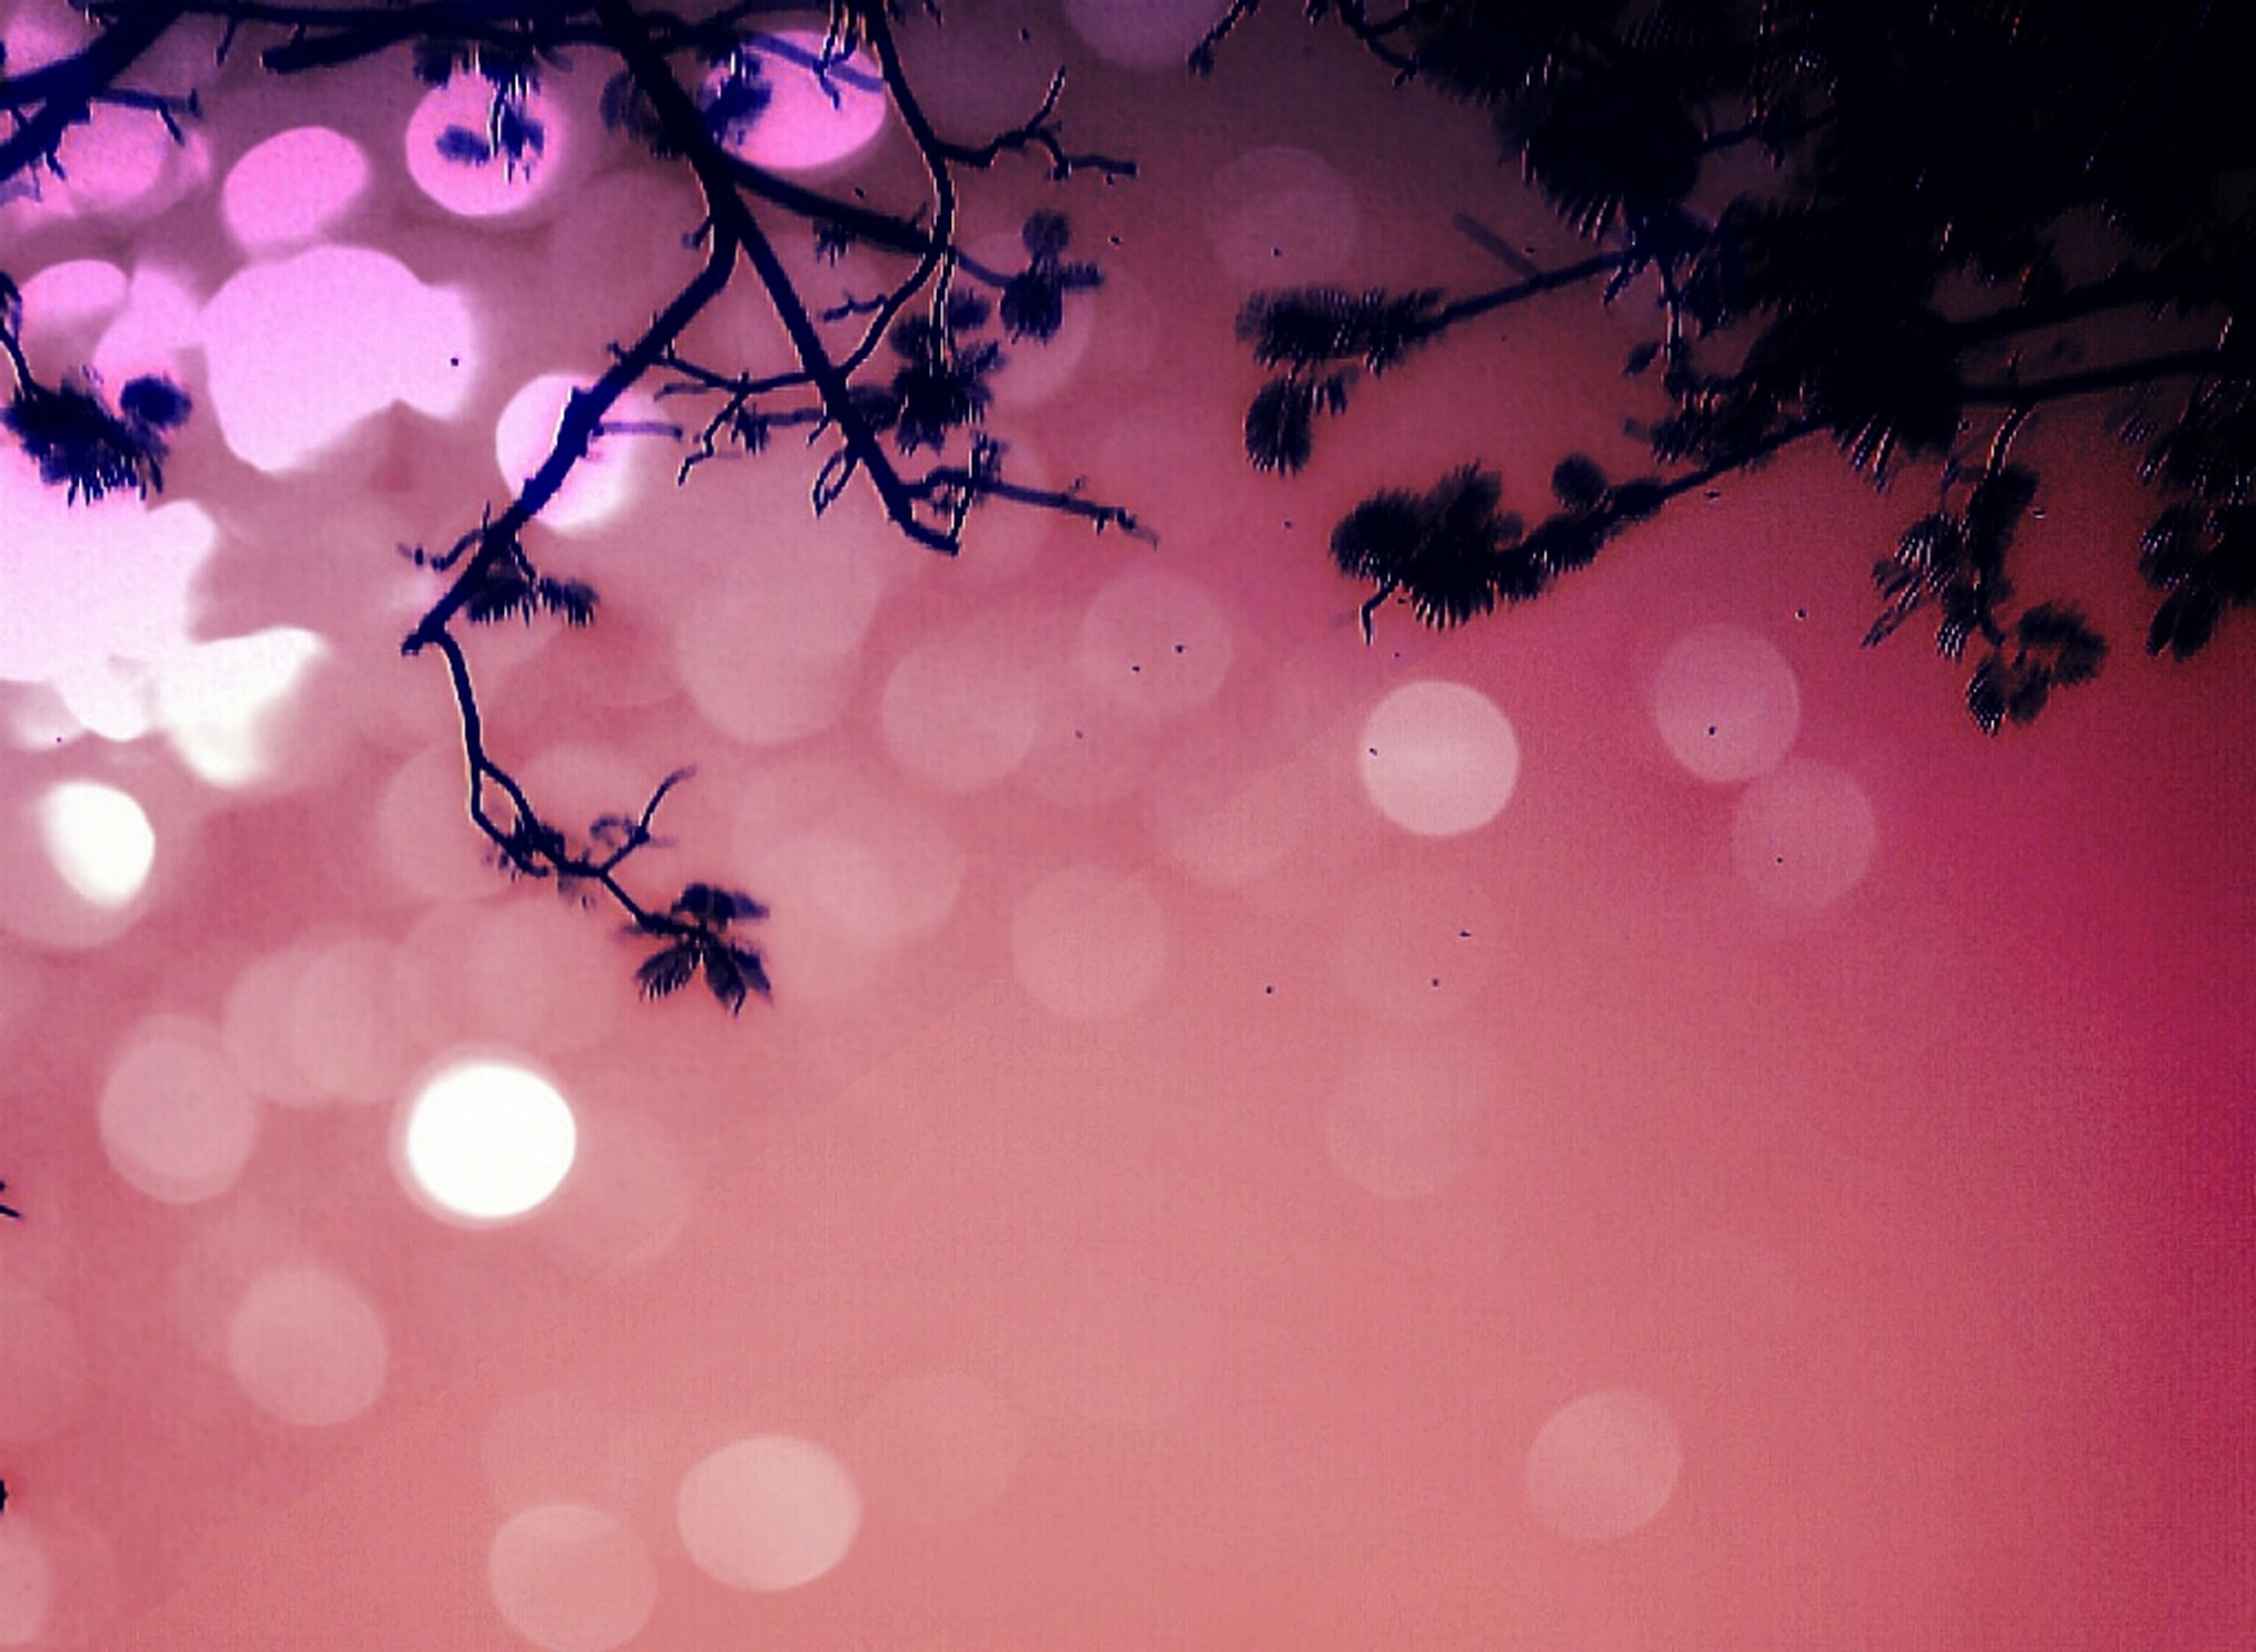 low angle view, illuminated, lighting equipment, pink color, decoration, hanging, tree, branch, red, celebration, sky, no people, christmas, night, nature, outdoors, christmas tree, multi colored, christmas decoration, christmas lights